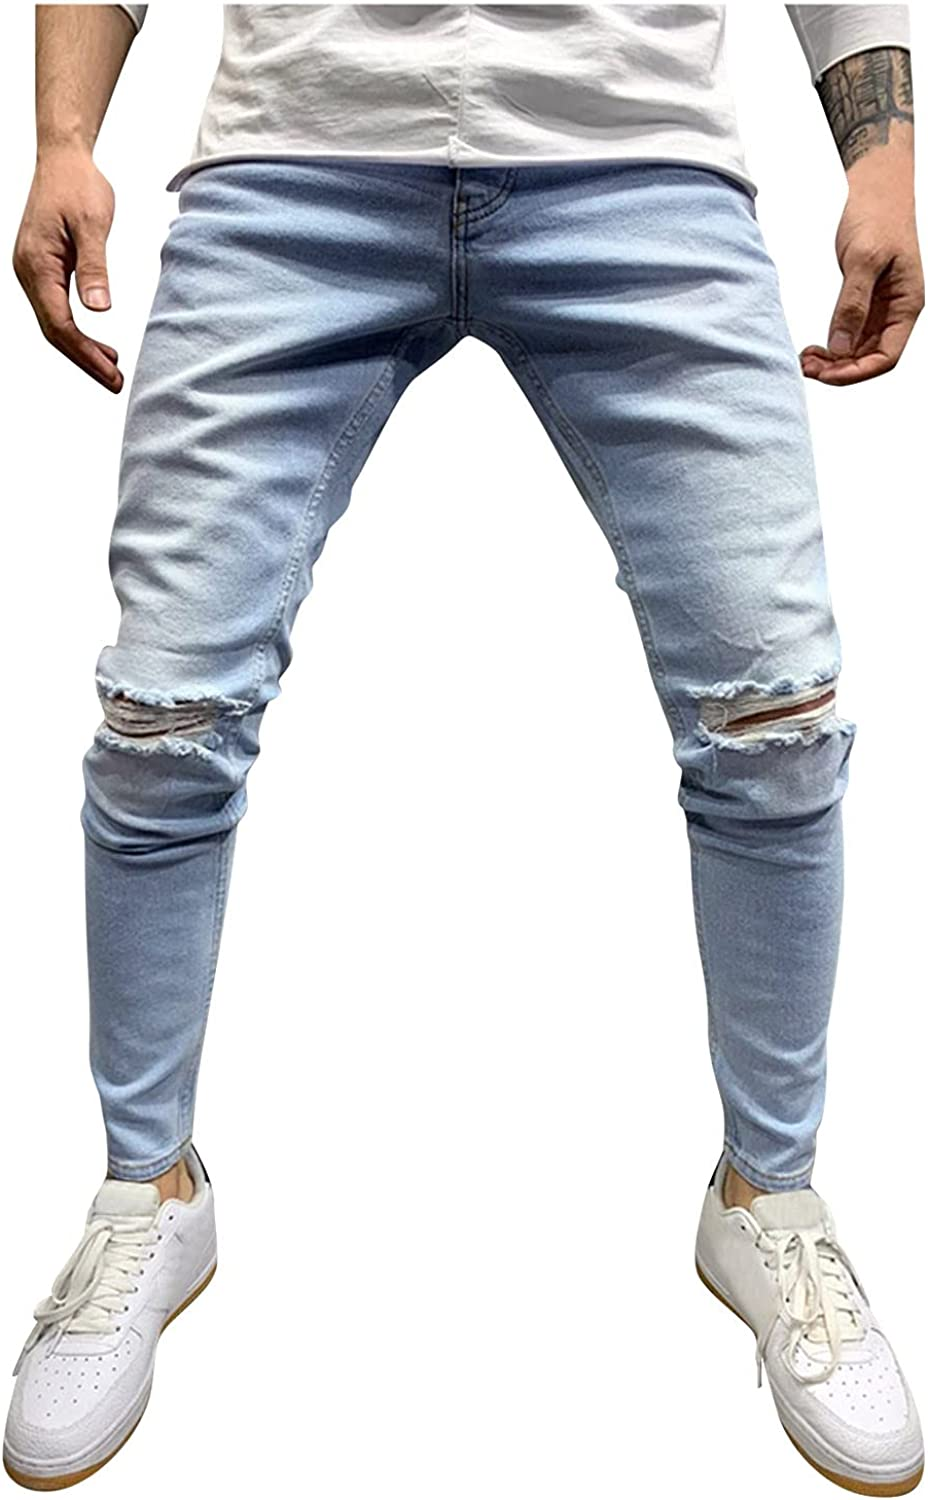 YUNDAN Mens Jeans Frayed Ripped Hole Skinny Stretch Comfy Fashion Denim Pants Slim-Fit Washed Stretch Summer Chino Trouser